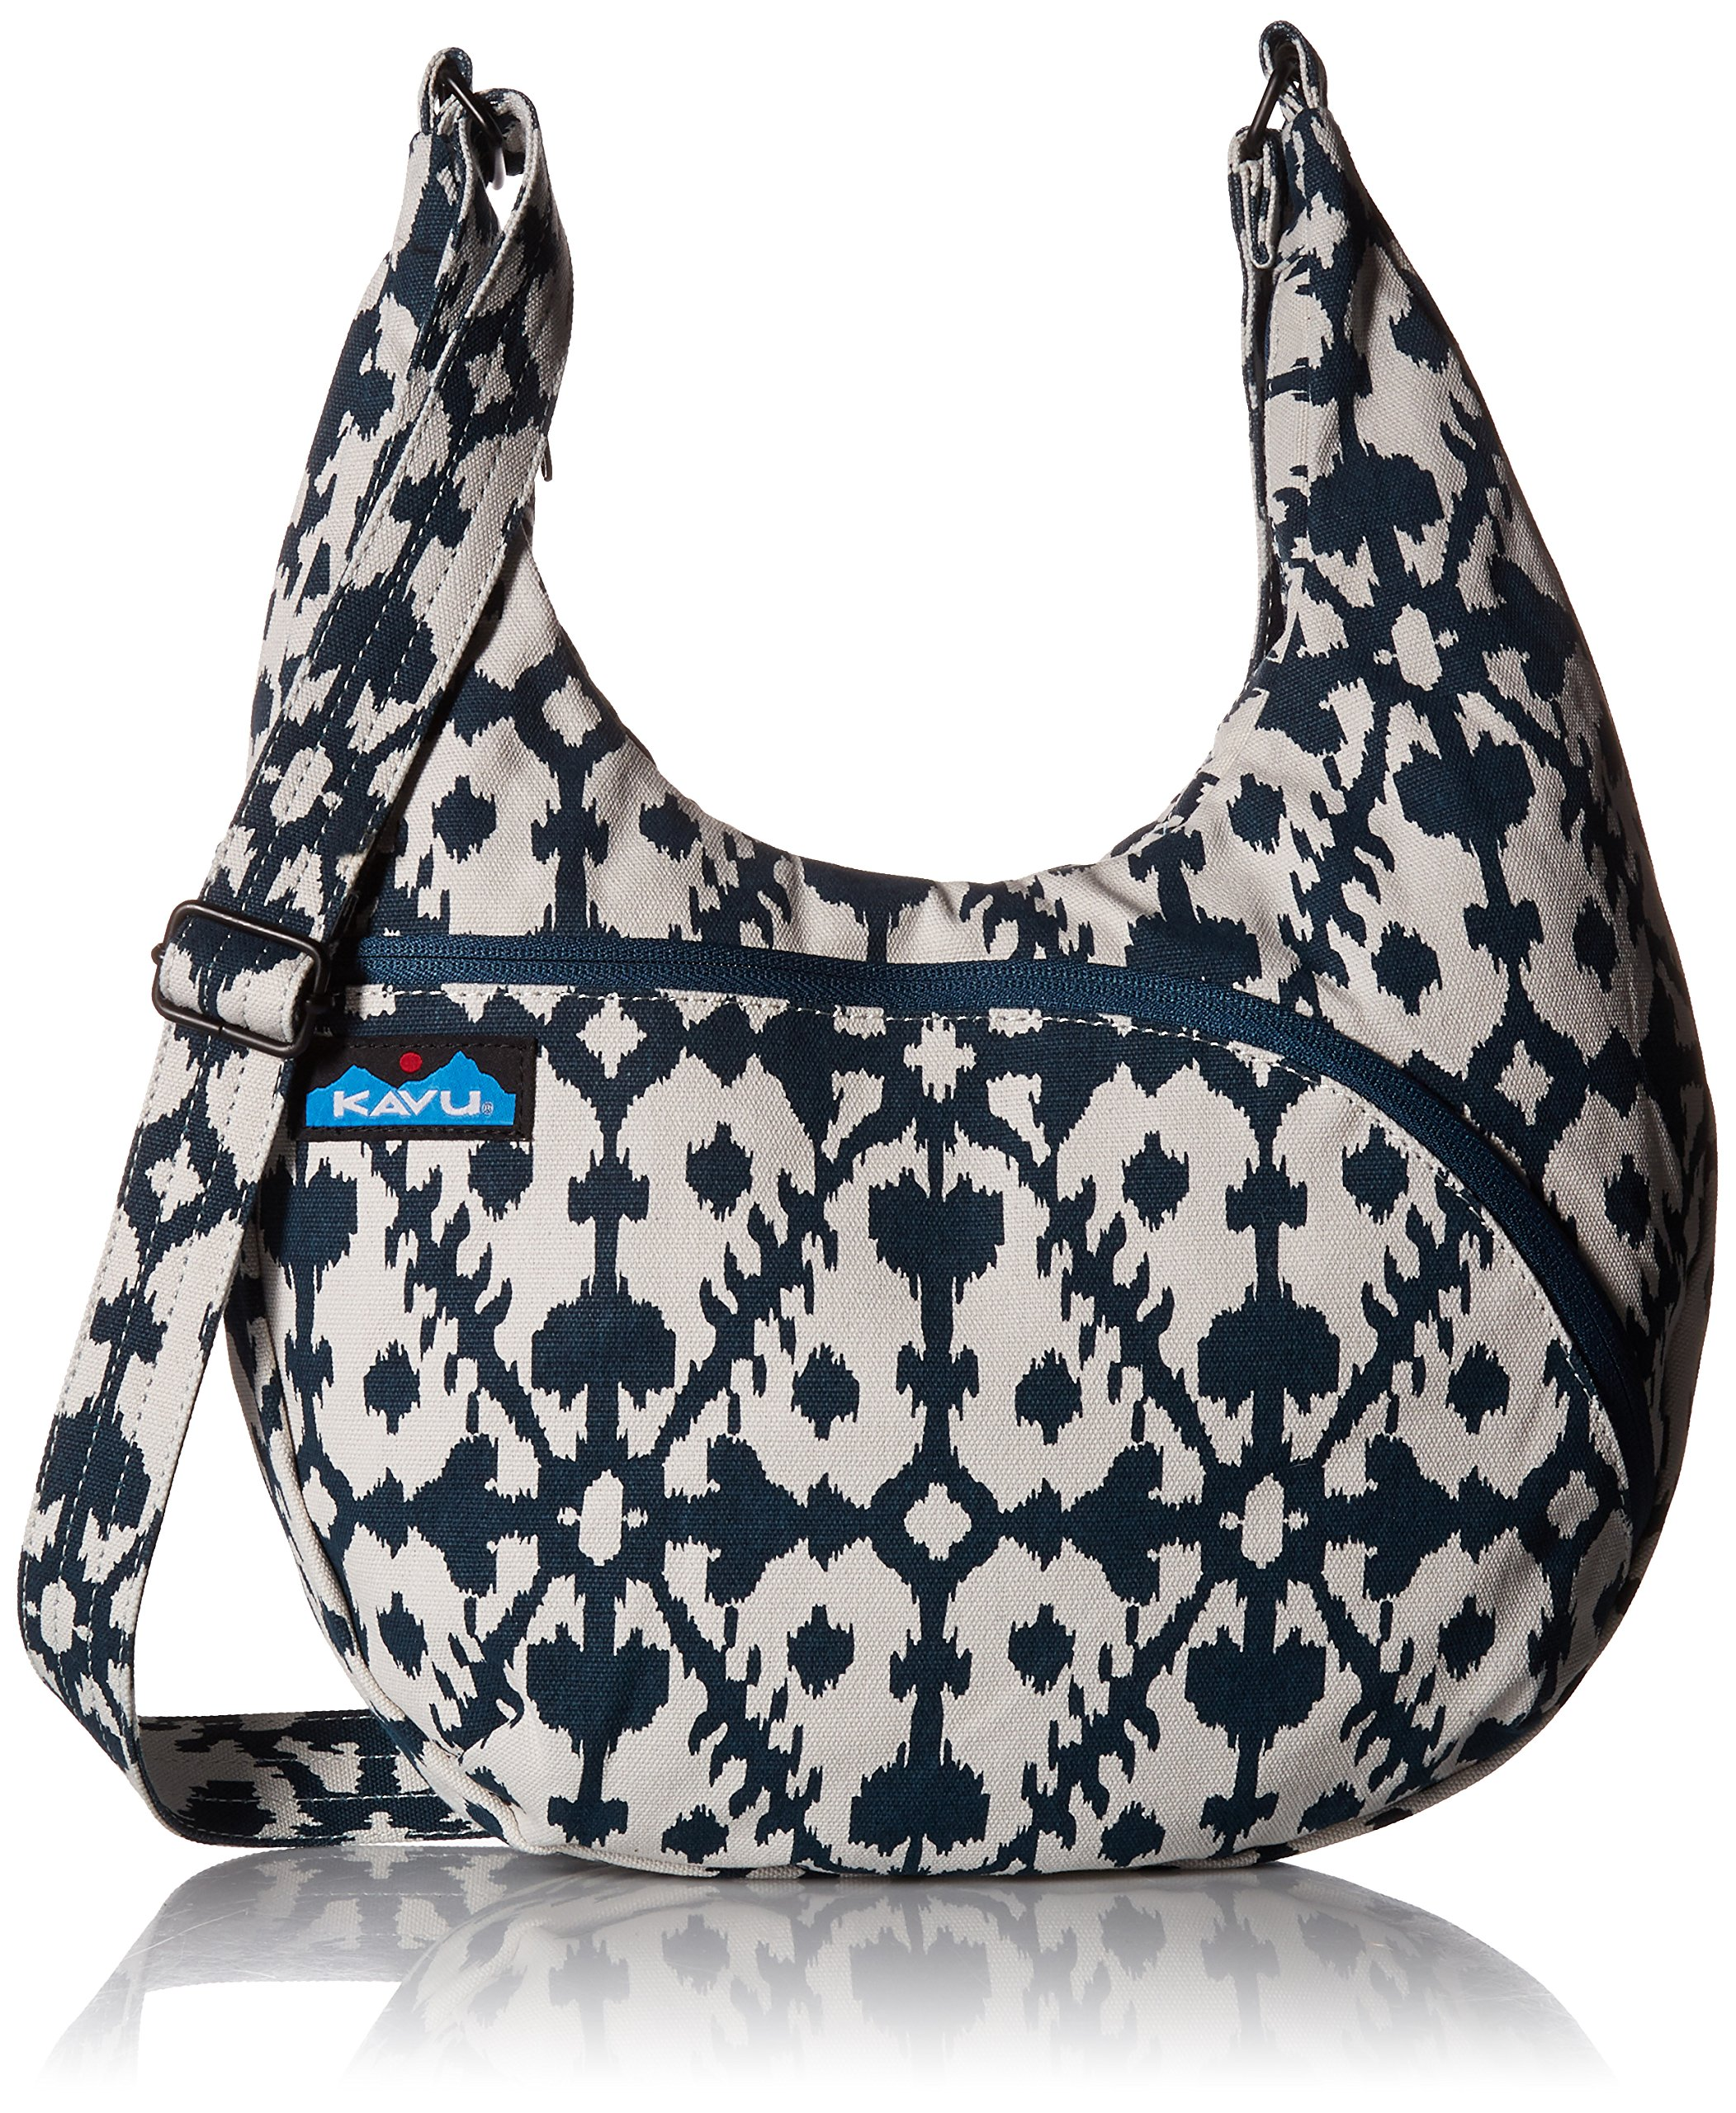 KAVU Women's Sydney Satchel, Blue Blot, One Size